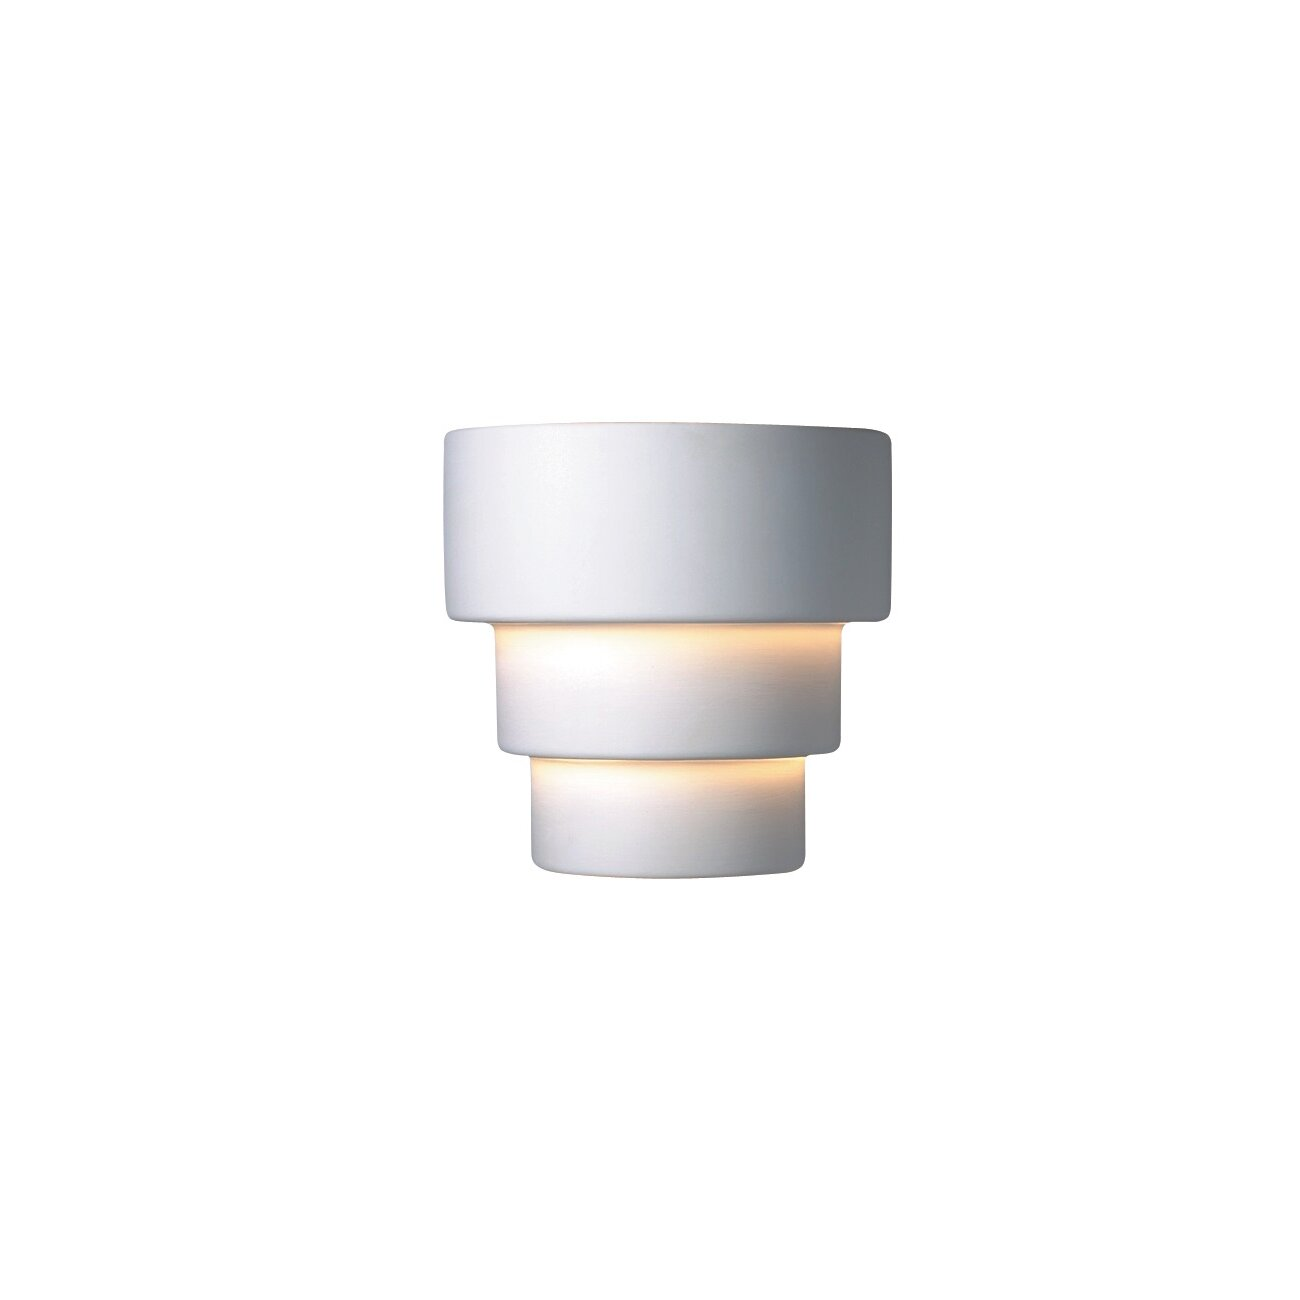 Justice Design Wall Sconces : Justice Design Group Ambiance 2 Light Wall Sconce & Reviews Wayfair